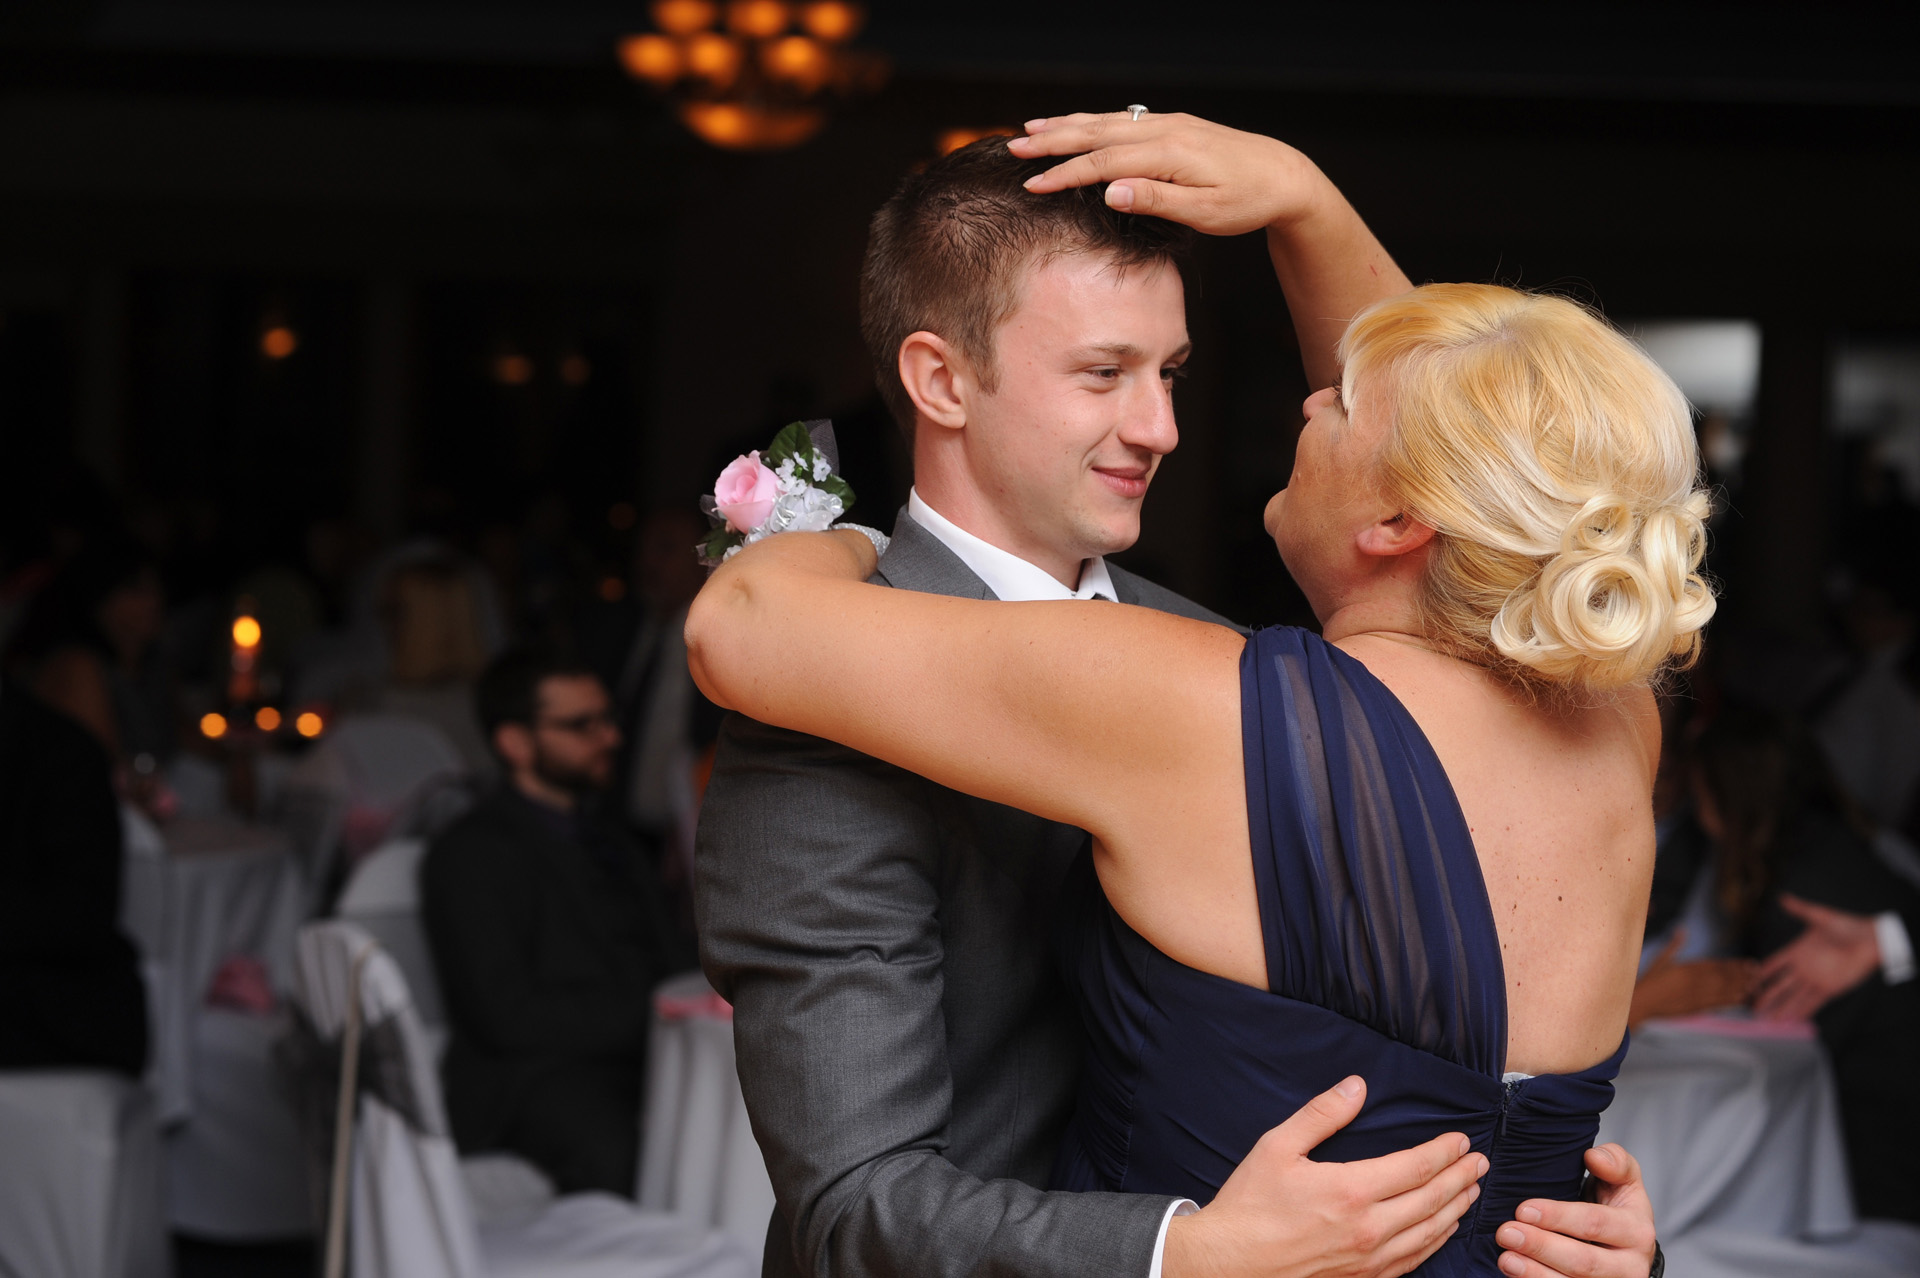 The Woodlands of Van Buren in Wayne, Michigan wedding photographer's photo of the mother of the groom pats her son's head after their mother / son dance at the wedding at the The Woodlands of Van Buren in Wayne, Michigan.